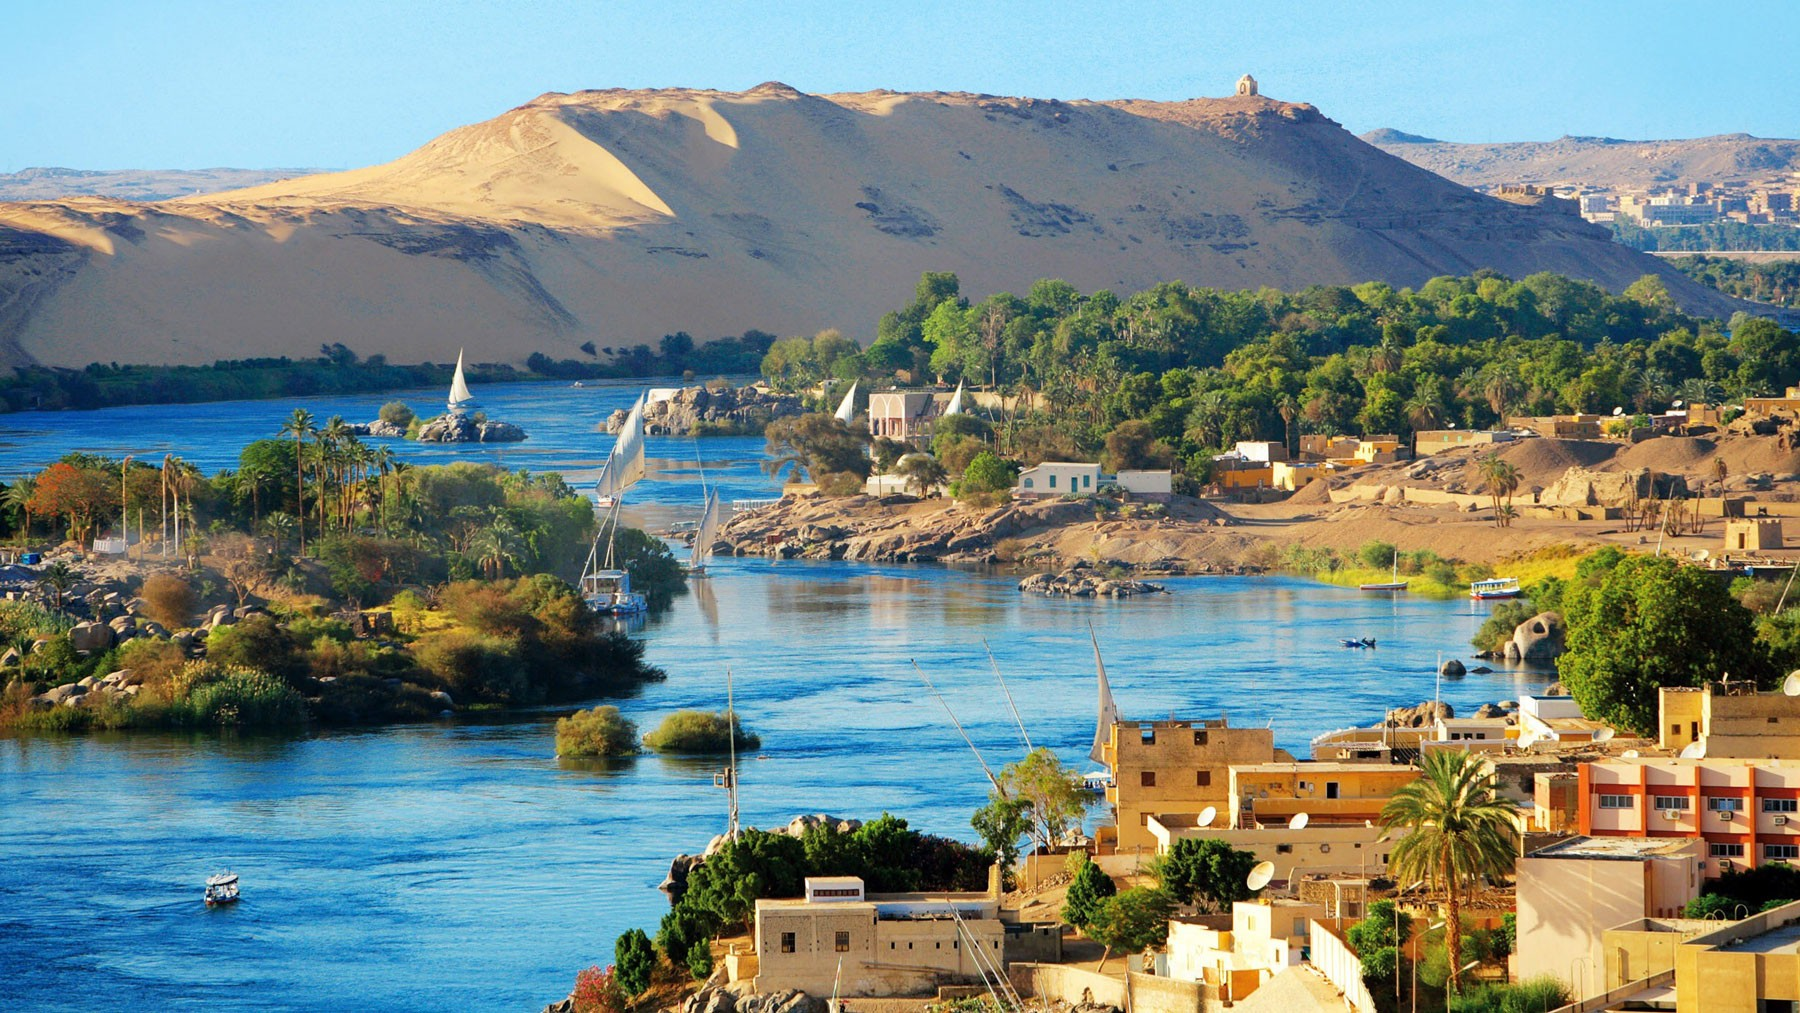 Private Day Tour Soheil Island and Nubian Village